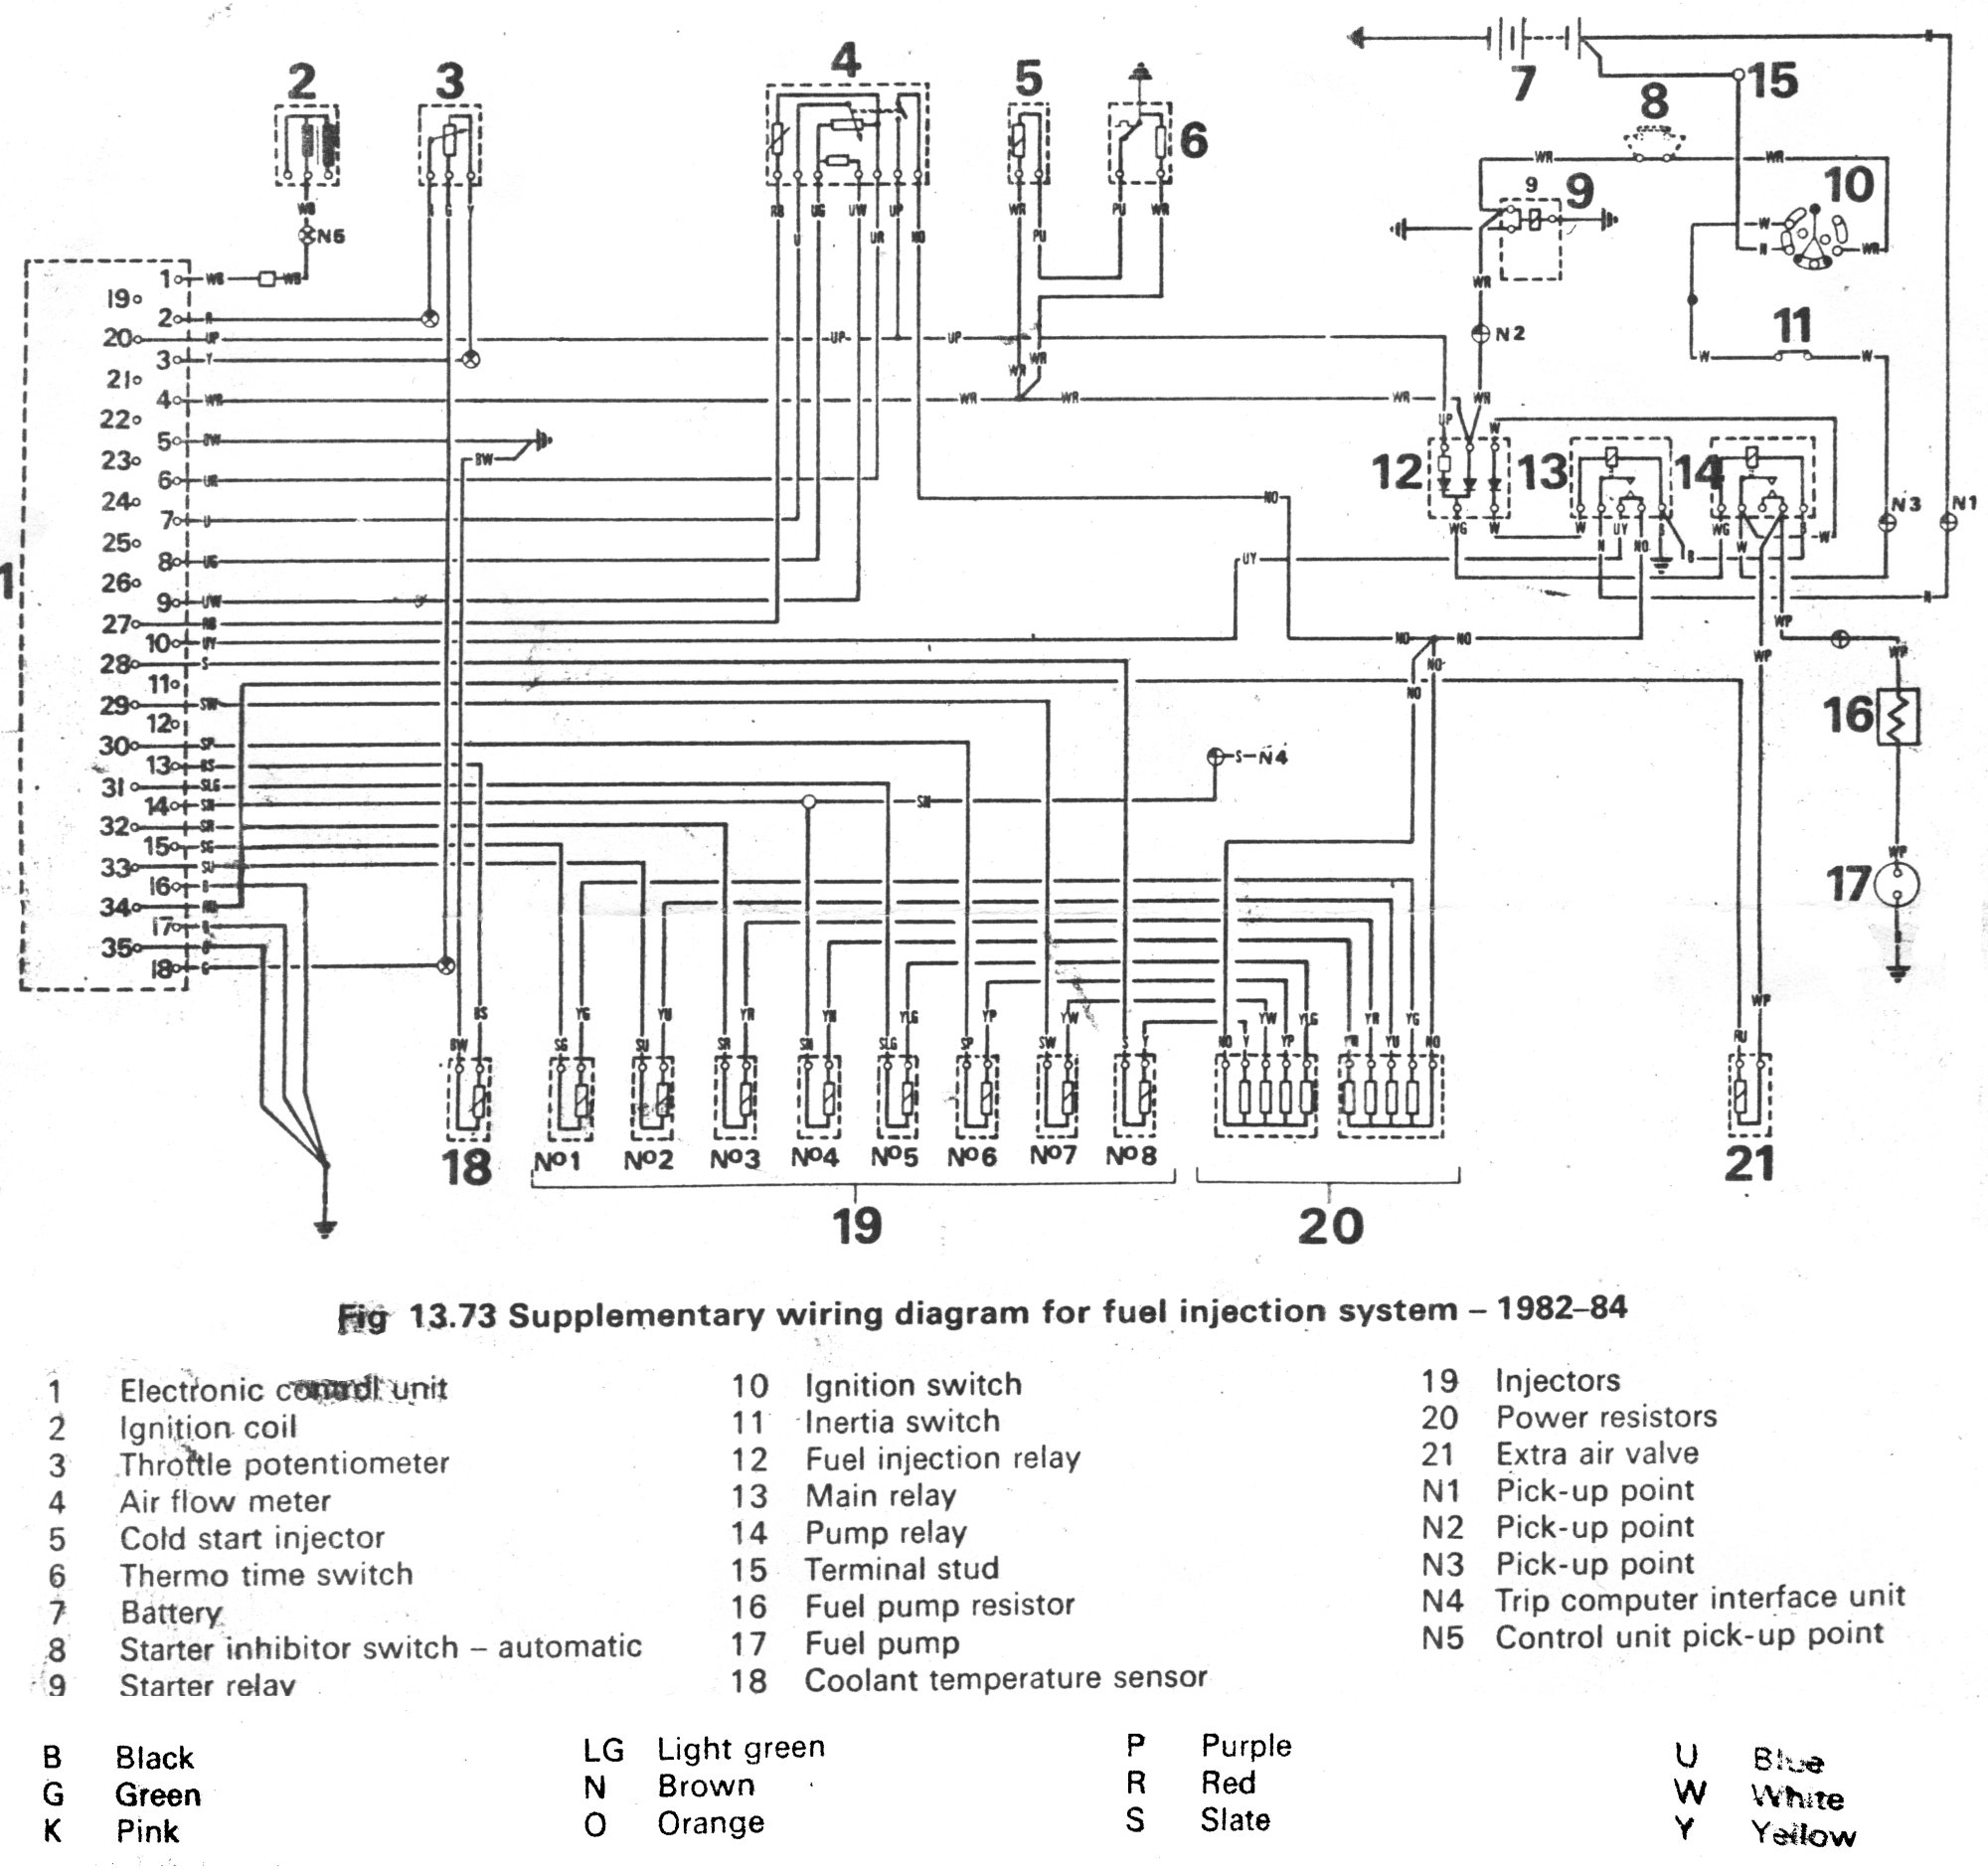 lucas_efi_1982_1984 v8 flapper efi wiring diagram please!!! discovery forum lr4x4 discovery 2 wiring diagram at gsmx.co